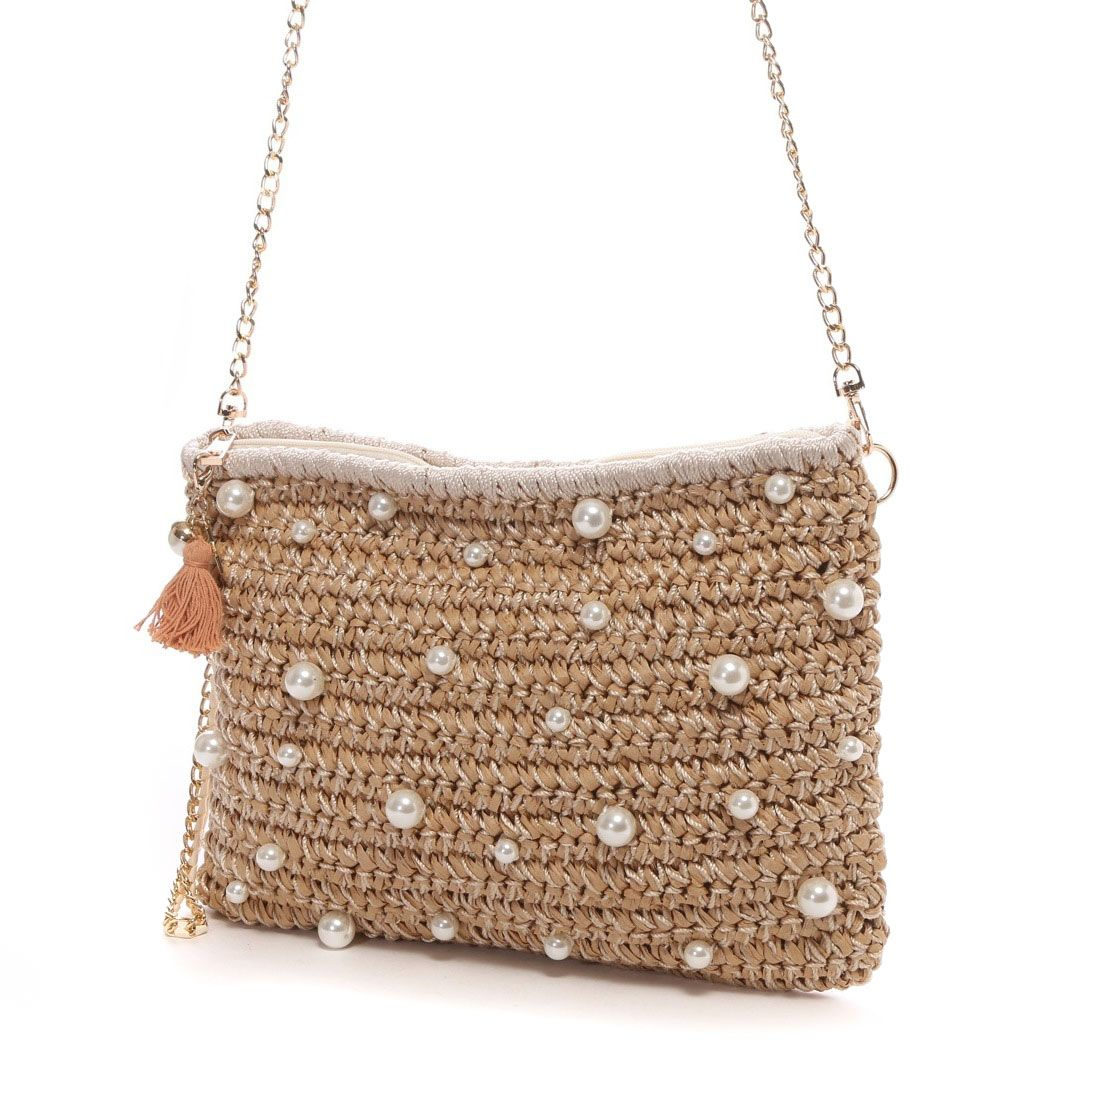 Kakatoo Crochet Pearl Bag Bag Pinterest Bolsos Ganchillo - Bolsos-ganchillo-crochet